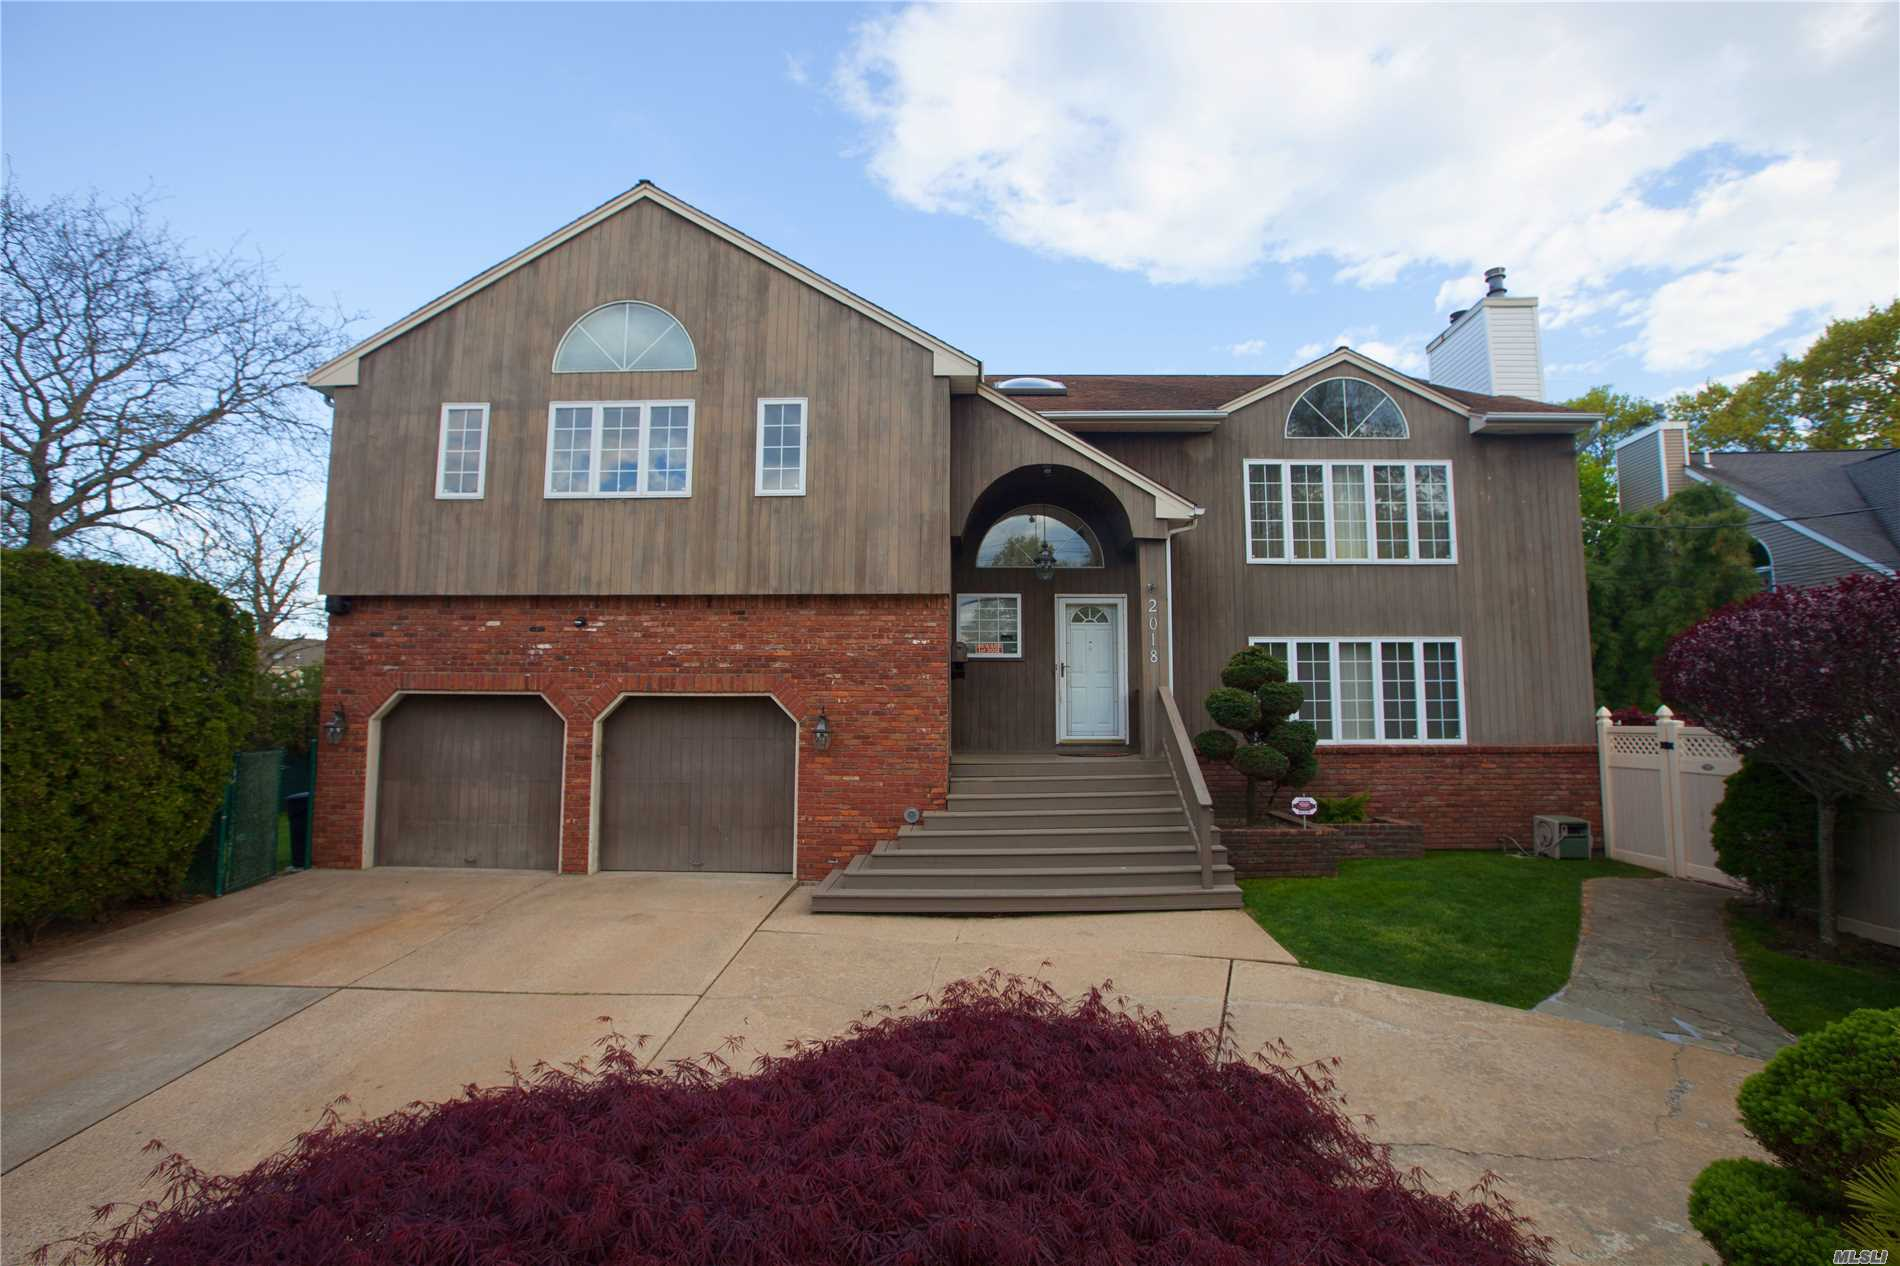 *Recent Tax Impact Notice Reduction To $16, 955.74! Stunning Vaulted Ceiling 5Bdr Home W/Immense Master Suite. Features A Contemp Eik W/High End Appliances, The Home Also Boasts 2 Dine Rms, 2 Lvngrms, 4 Ful Bths For The Potential For A Mother/Daughter W/Proper Permits. Massive Ful Fnshd Bsmt, Full House Generator Ready For Hook-Up. Alarmsystem, Hardwood Flrs, Heated In-Ground Pool Lights/Waterfall. Tremendous 2 1/2 Garage. Award Winning Merrick #25 Sd. Close To Lirr And Houses Of Worship.